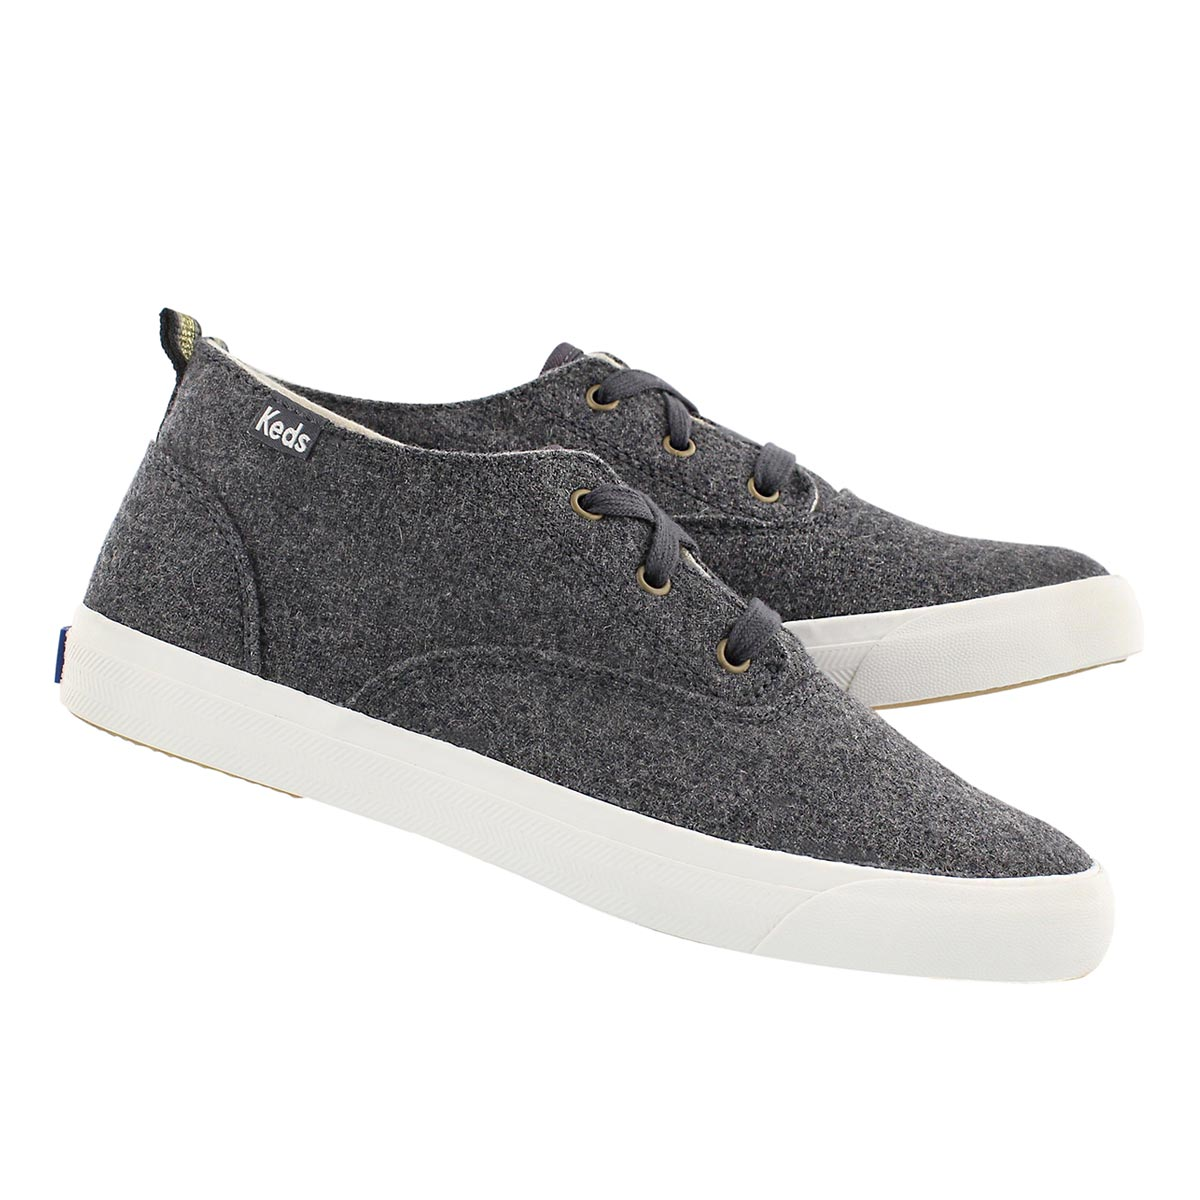 Lds Triumph Mid Wool graphite sneaker